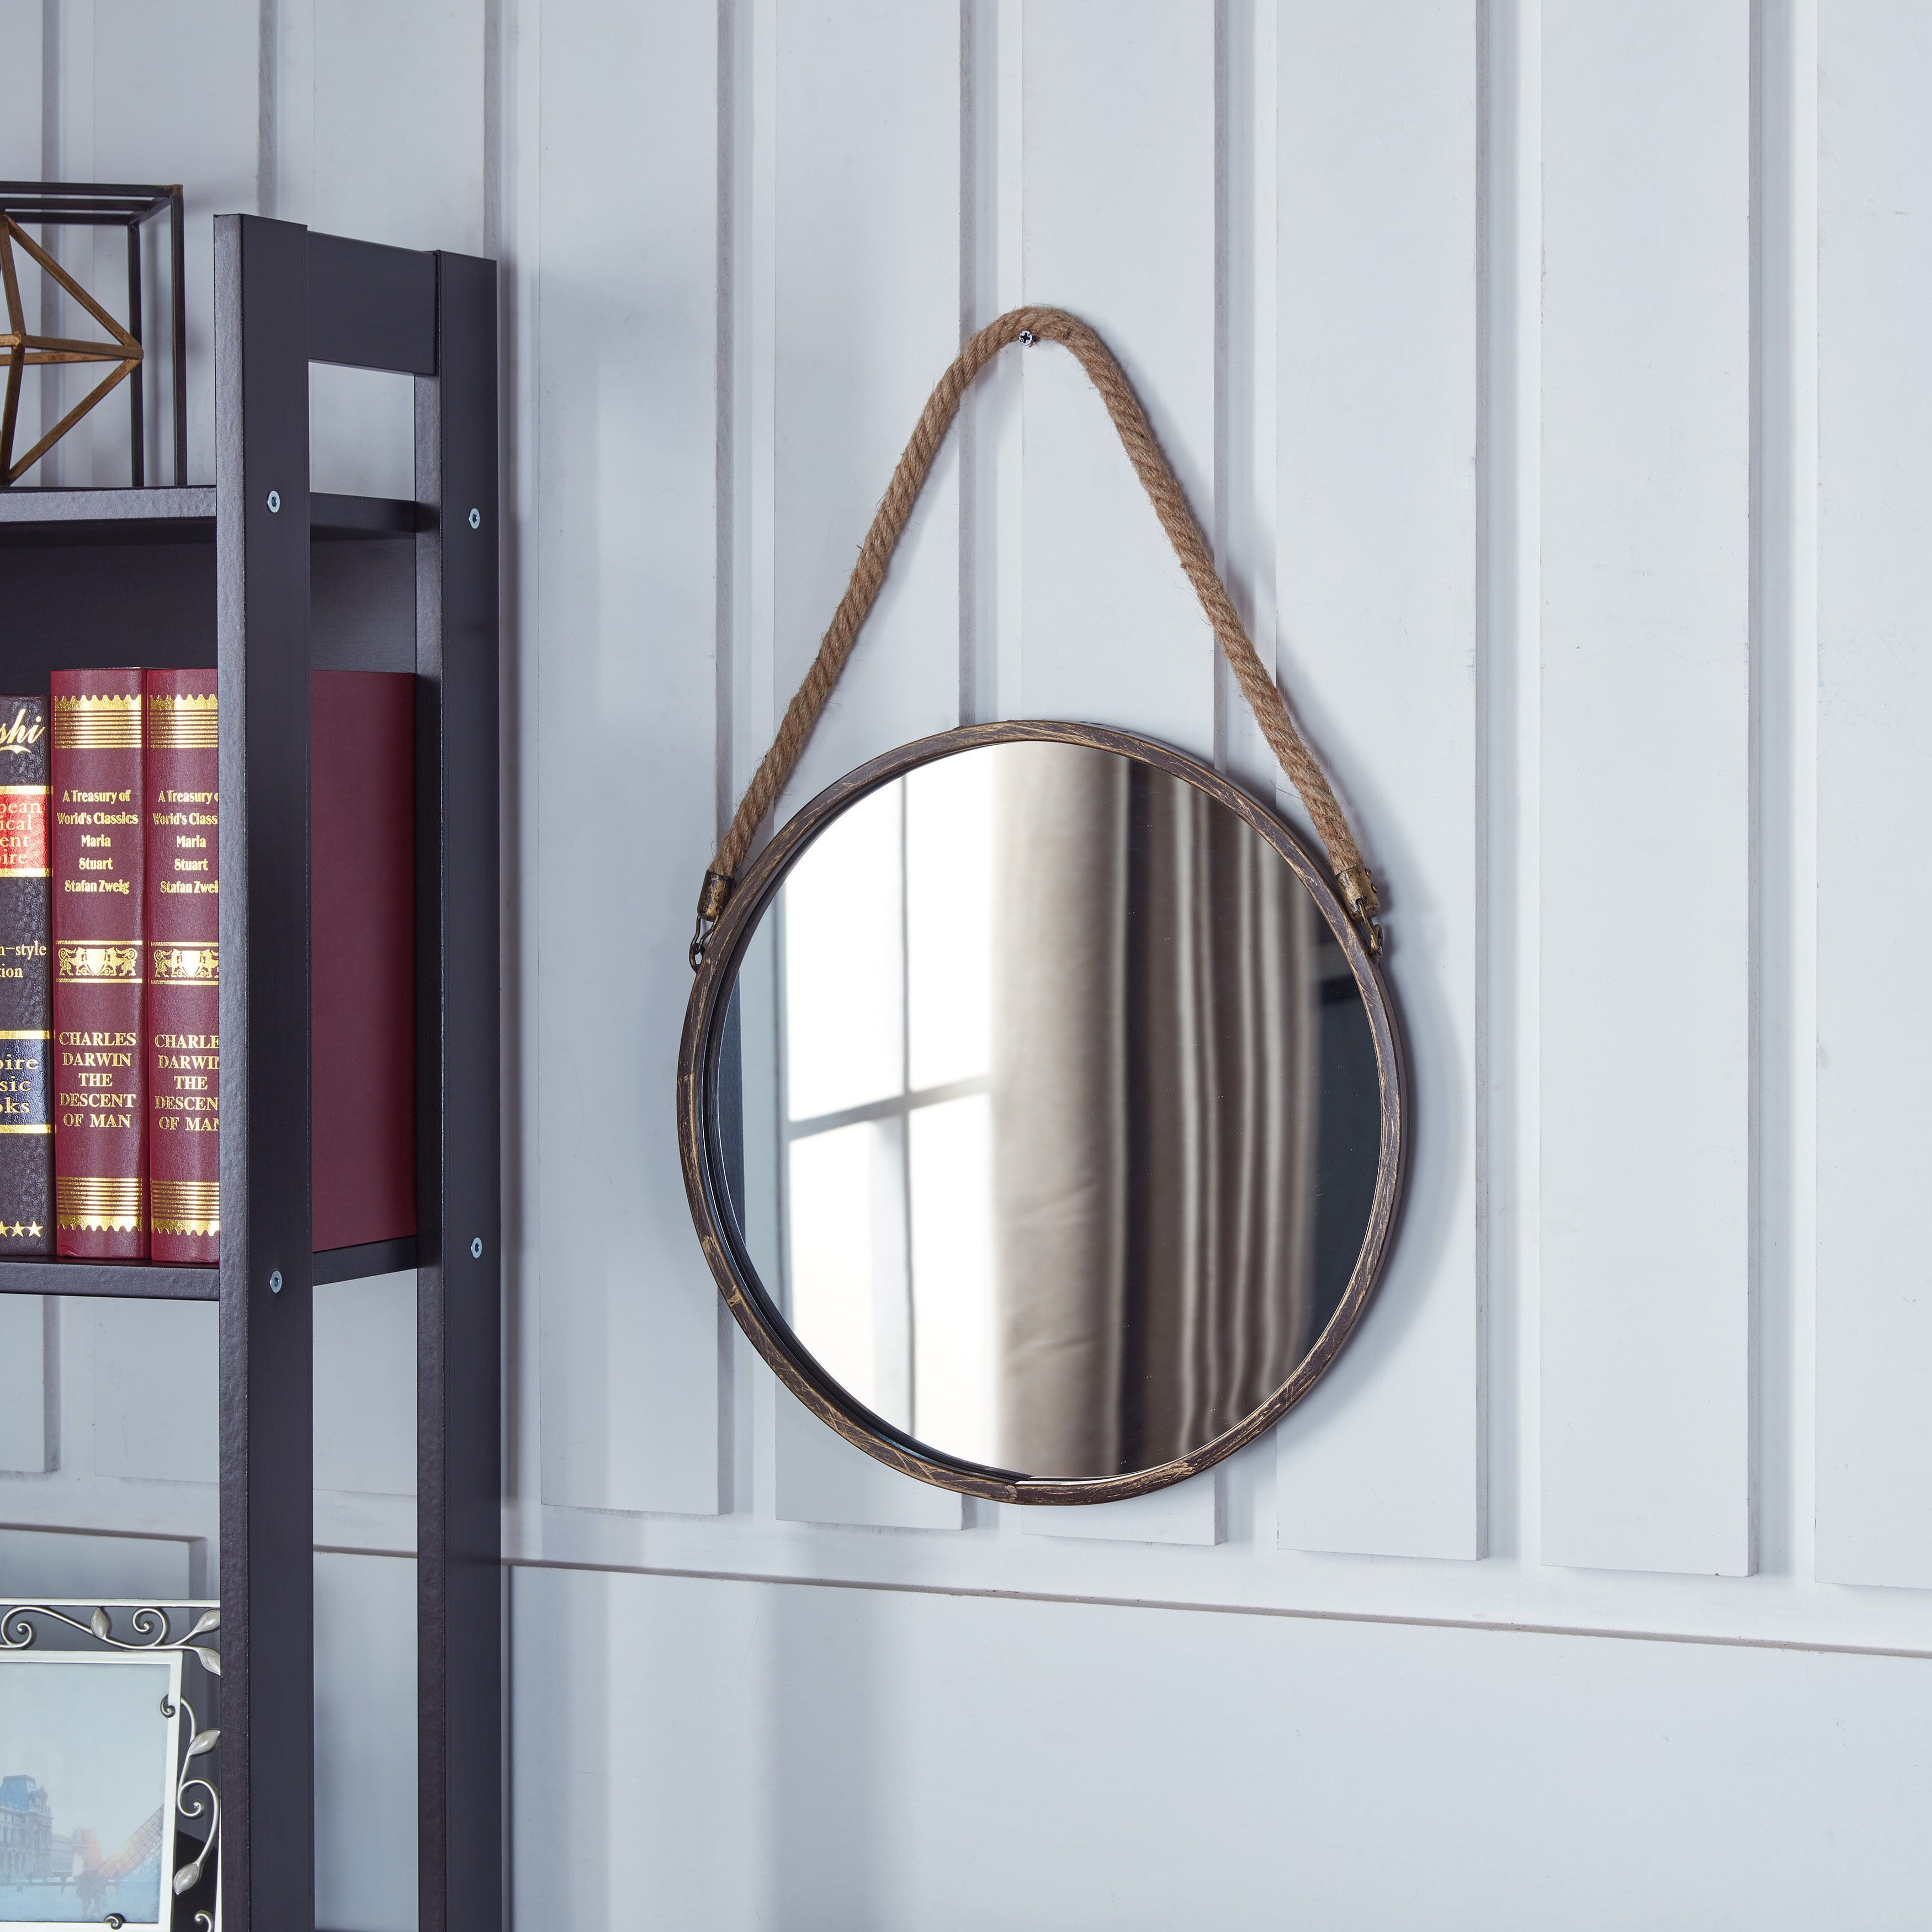 Danya B Patina Goldtone 15 Inch Hanging Rope Round Mirror Antique Gold A N With Images Hanging Mirror Round Mirrors Mirror